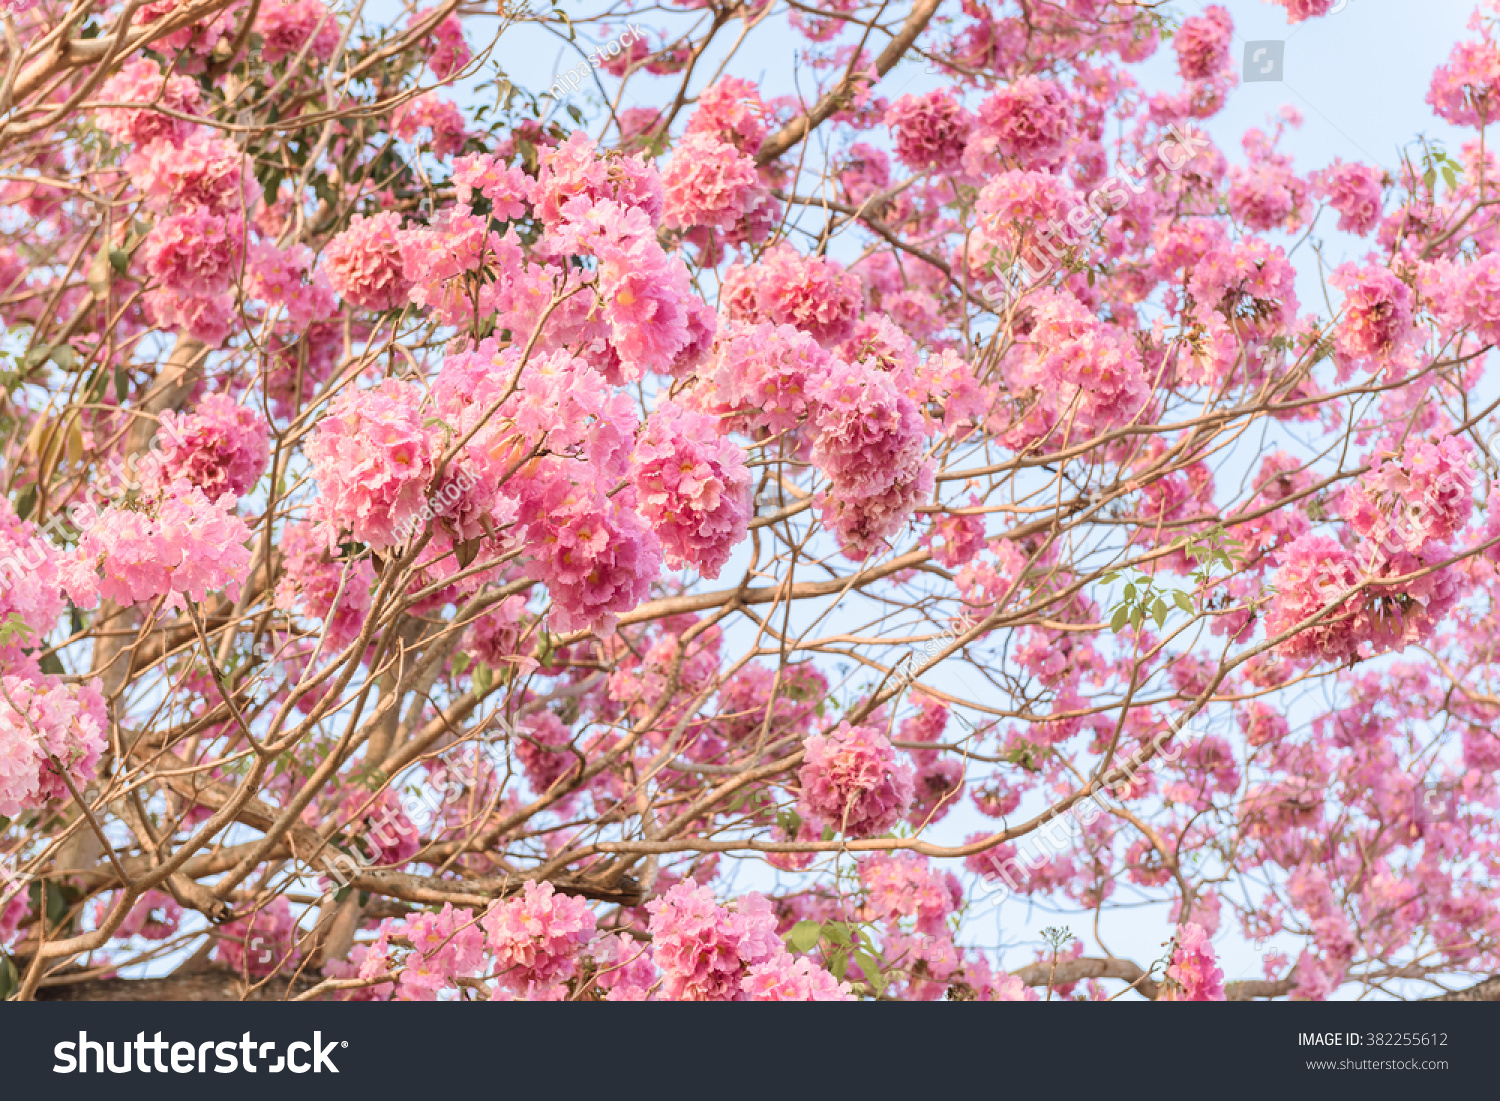 Royalty Free Tabebuia Rosea Is A Pink Flower 382255612 Stock Photo